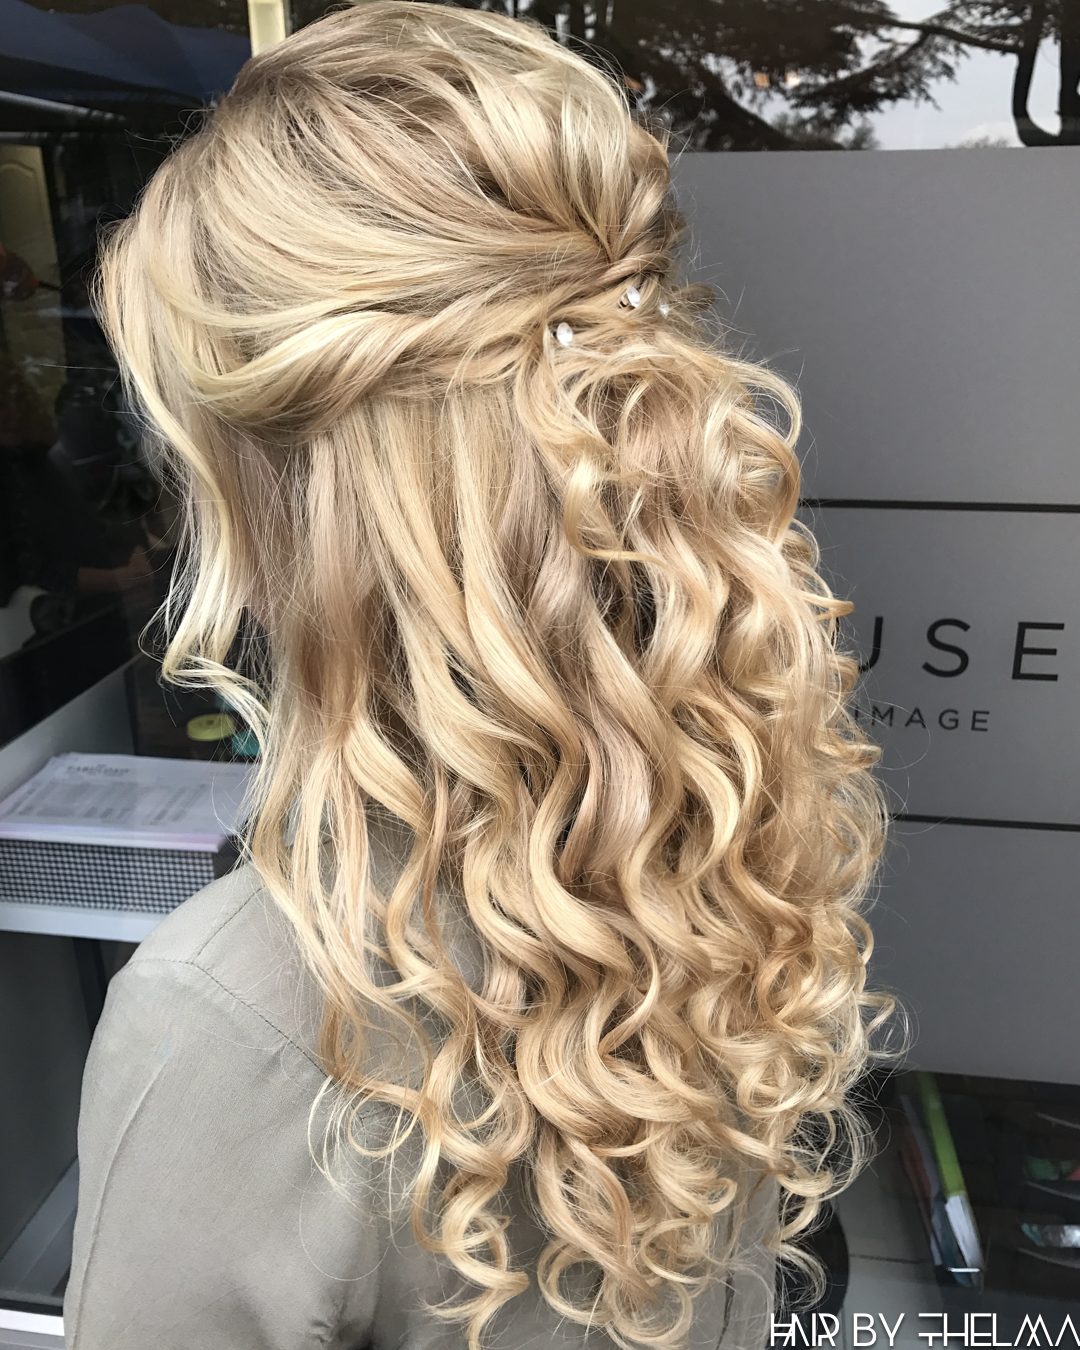 Hairstyles Up For Prom: Half Up Half Down, Prom Hairstyles, Matric Dance, Diamanté